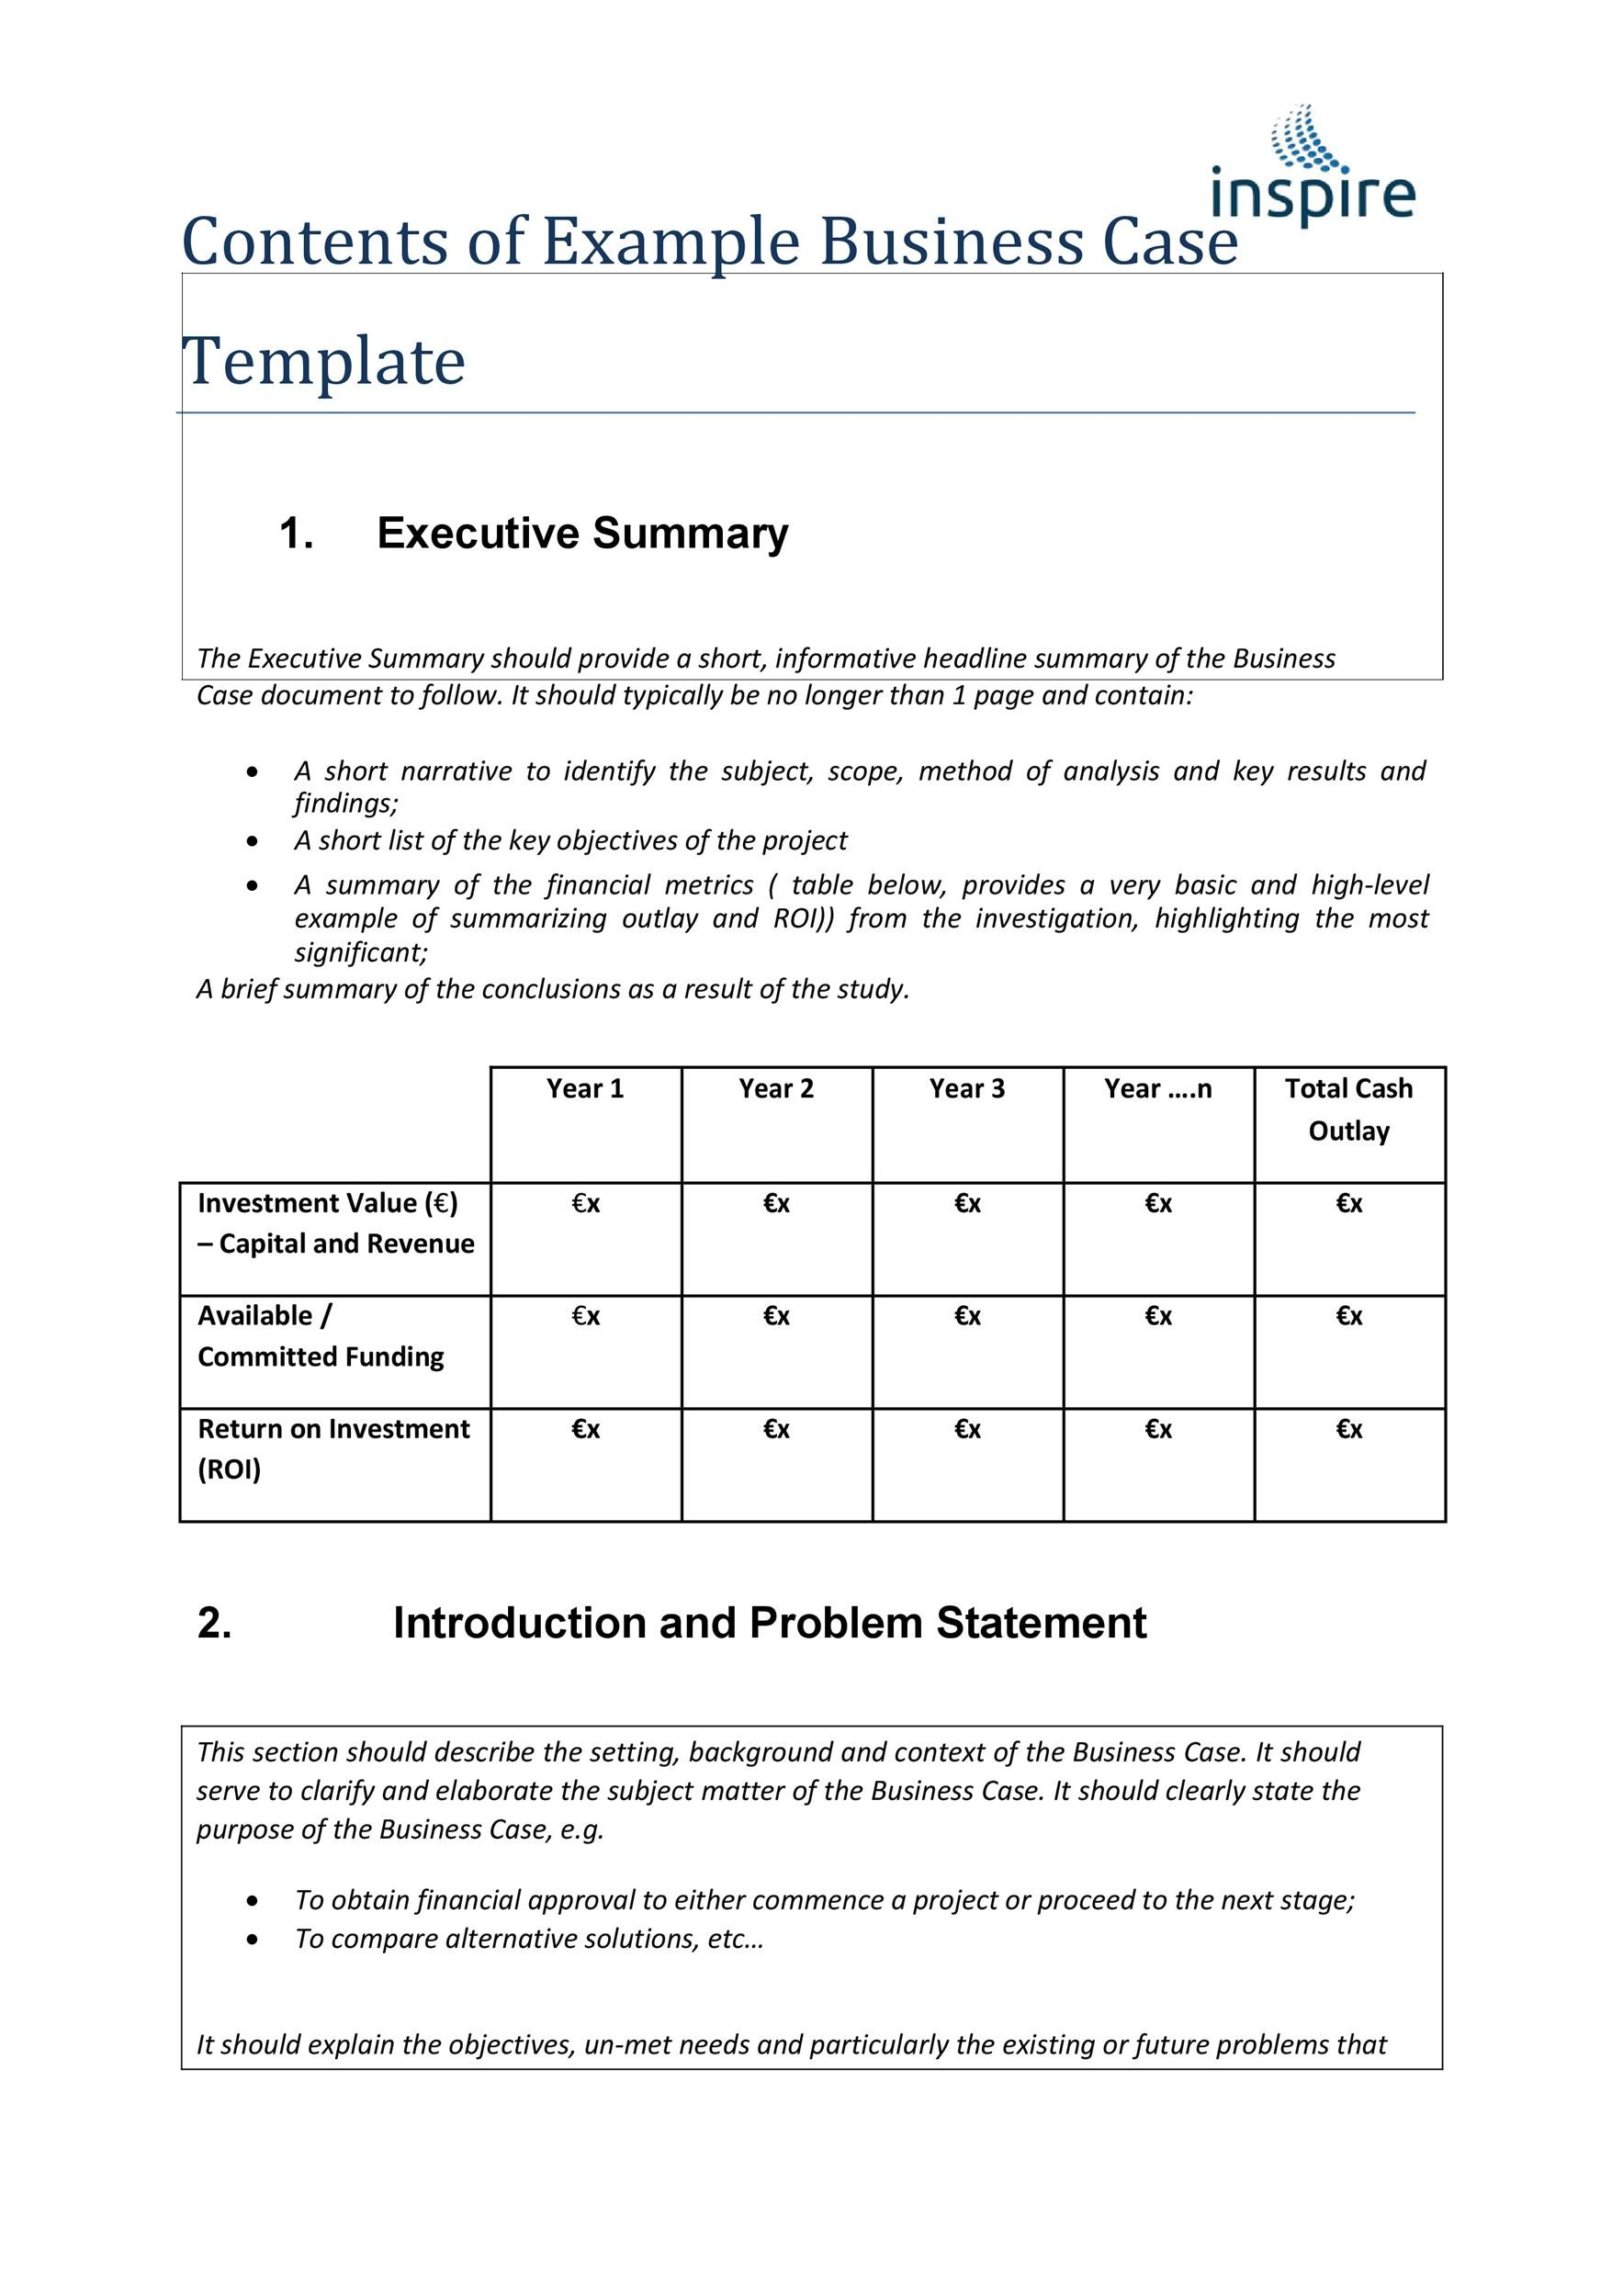 Business case study template yelomphonecompany business case study template flashek Choice Image